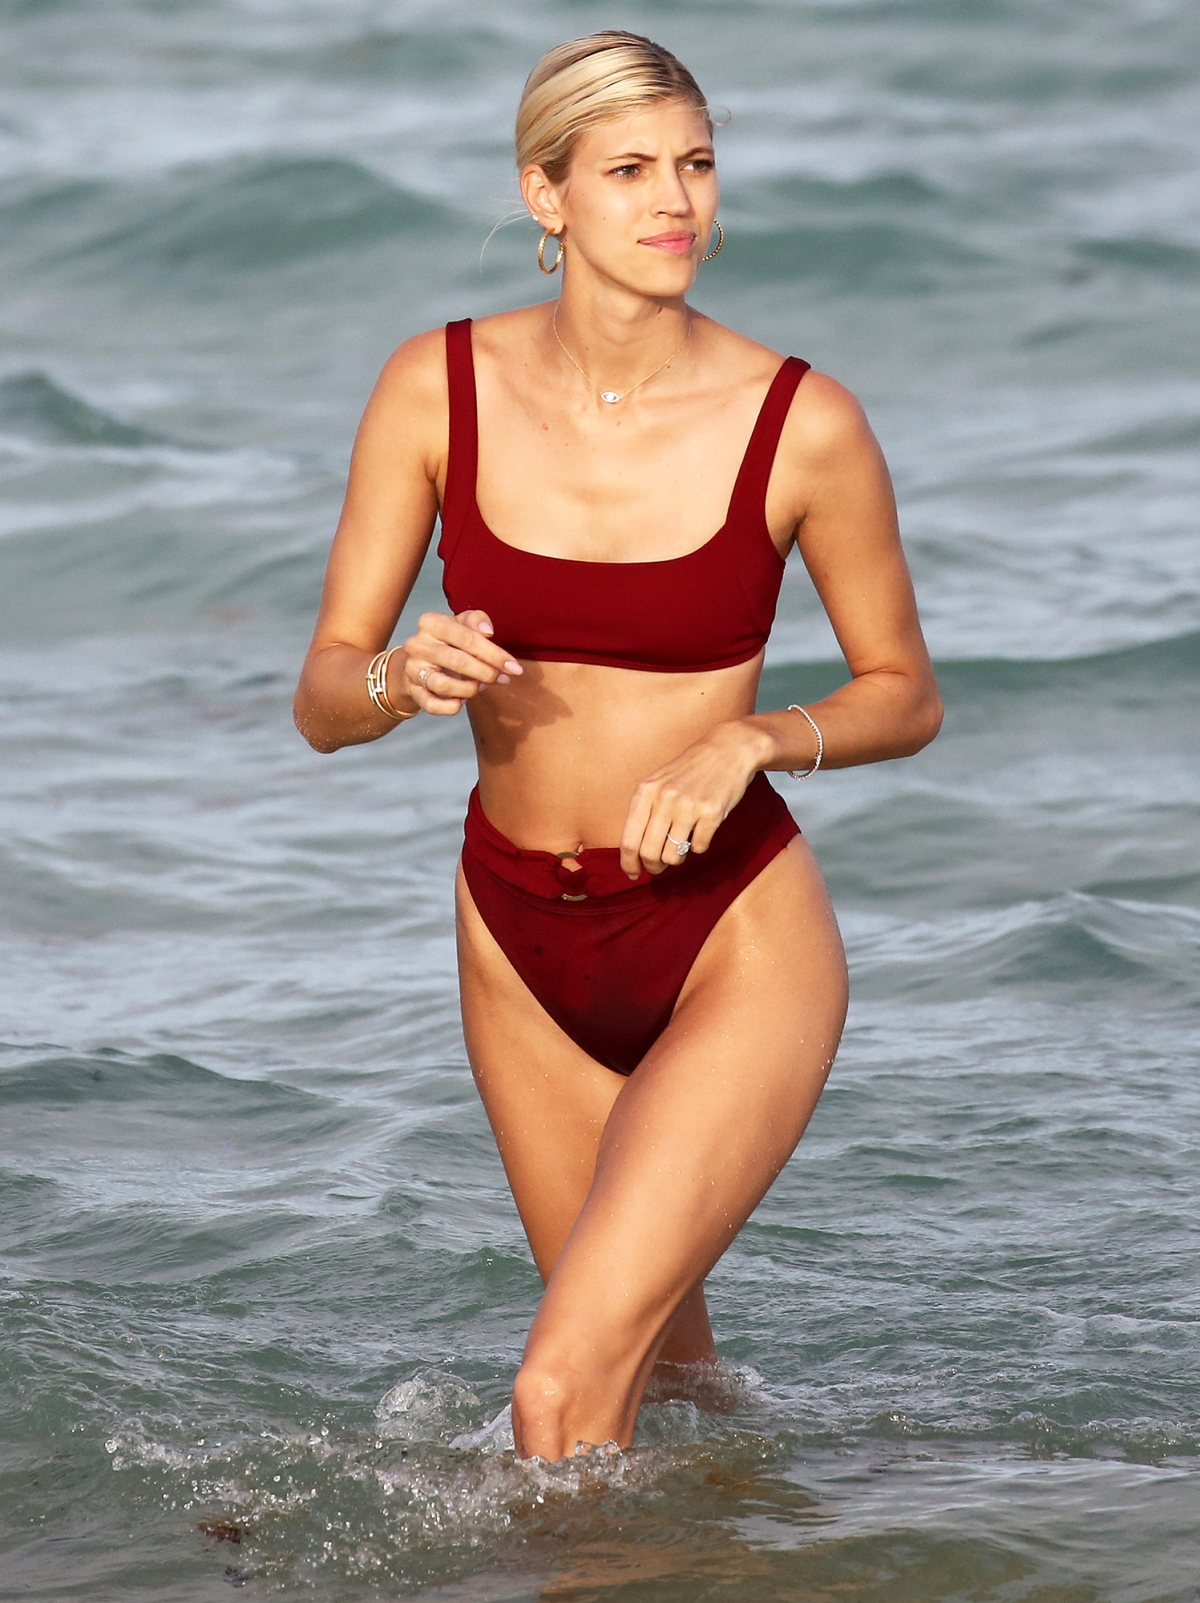 Ally Walker Hot Pics how to get a bikini body: models' fitness, diet, confidence tips